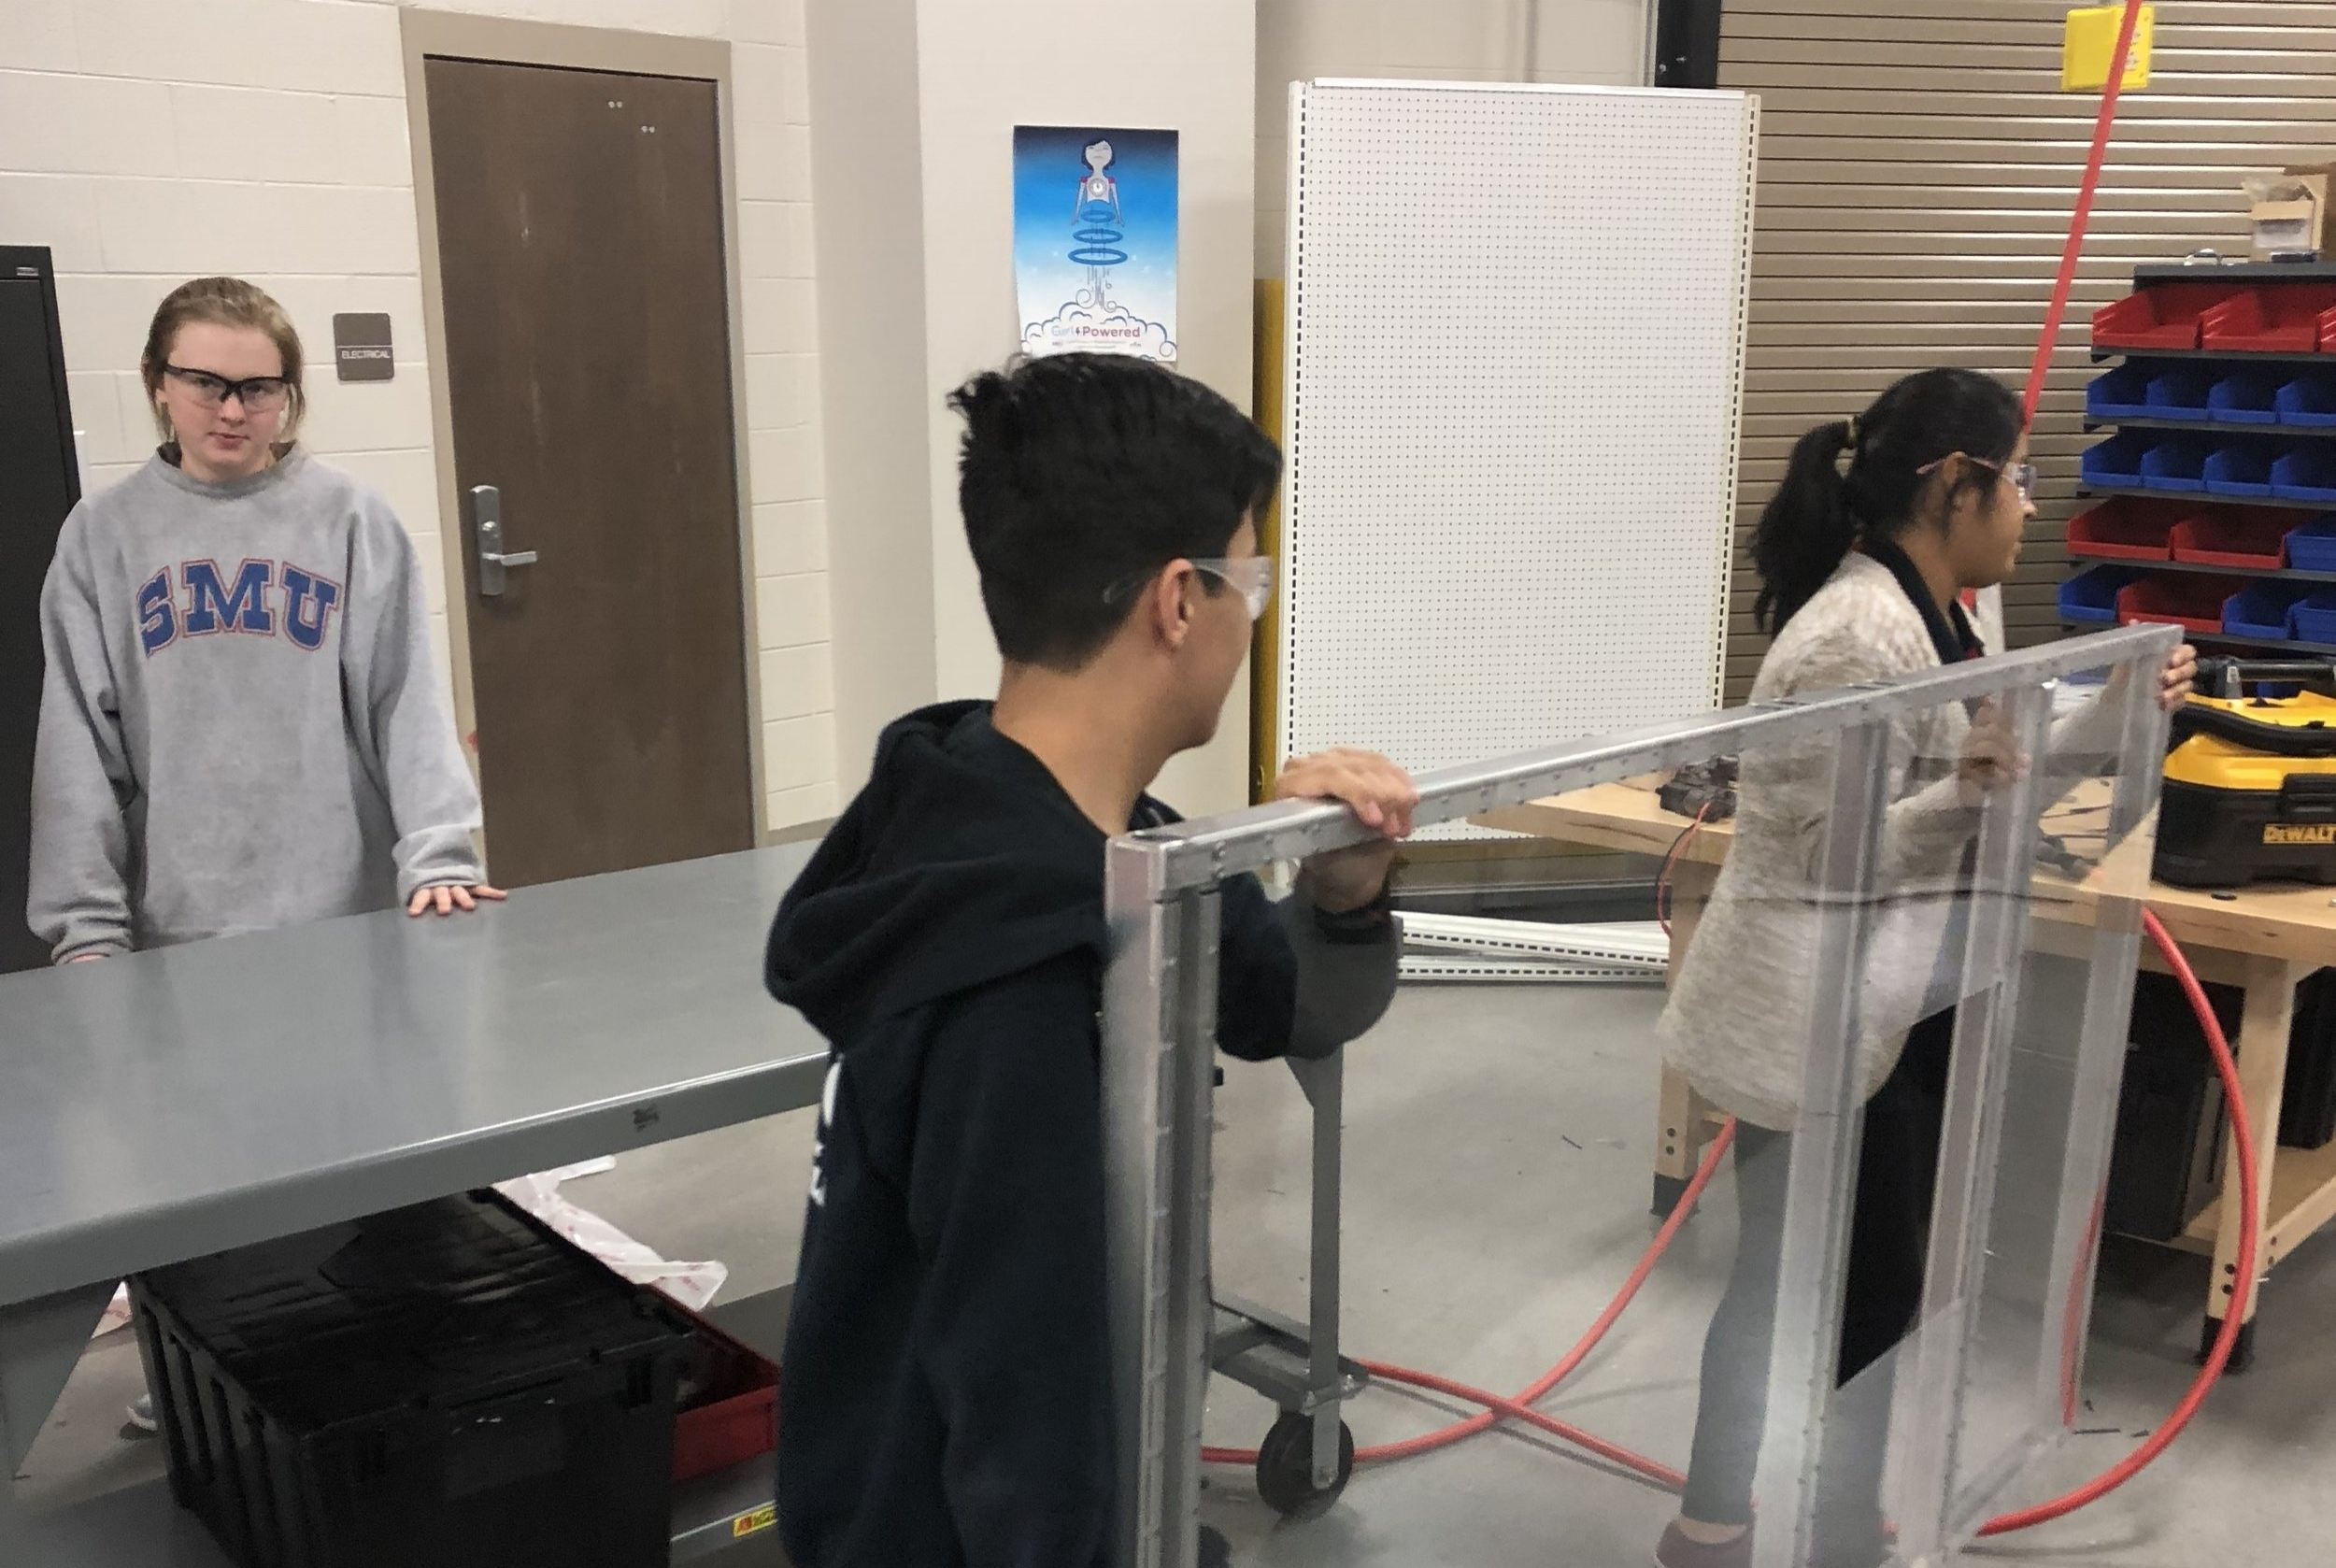 Fran, Noah, and Faith working on the game-specific field panels ready to install in our arena perimeter.  We're getting closer to a functional playing-field!  Right now the prototyping teams have everything they need, but at some point we'll have a full field ready for practice and scrimmages.